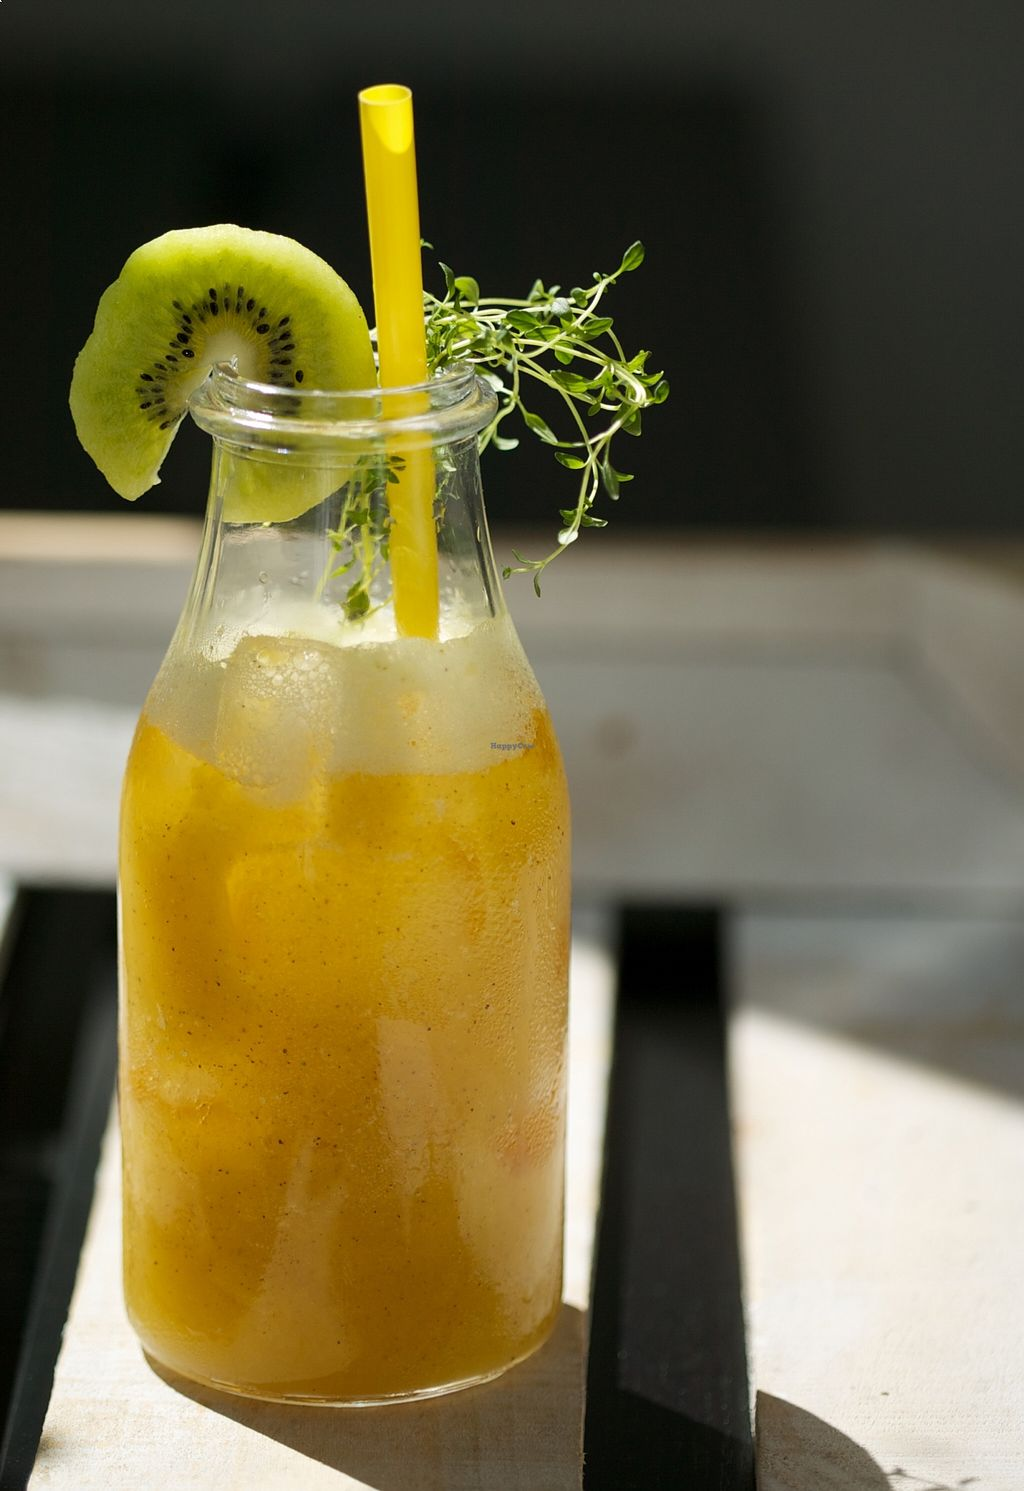 """Photo of CLOSED: Fresh Delicafe  by <a href=""""/members/profile/fresh.delicafe"""">fresh.delicafe</a> <br/>Kiwi, mango, orange & citron thyme <br/> August 23, 2015  - <a href='/contact/abuse/image/62221/114794'>Report</a>"""